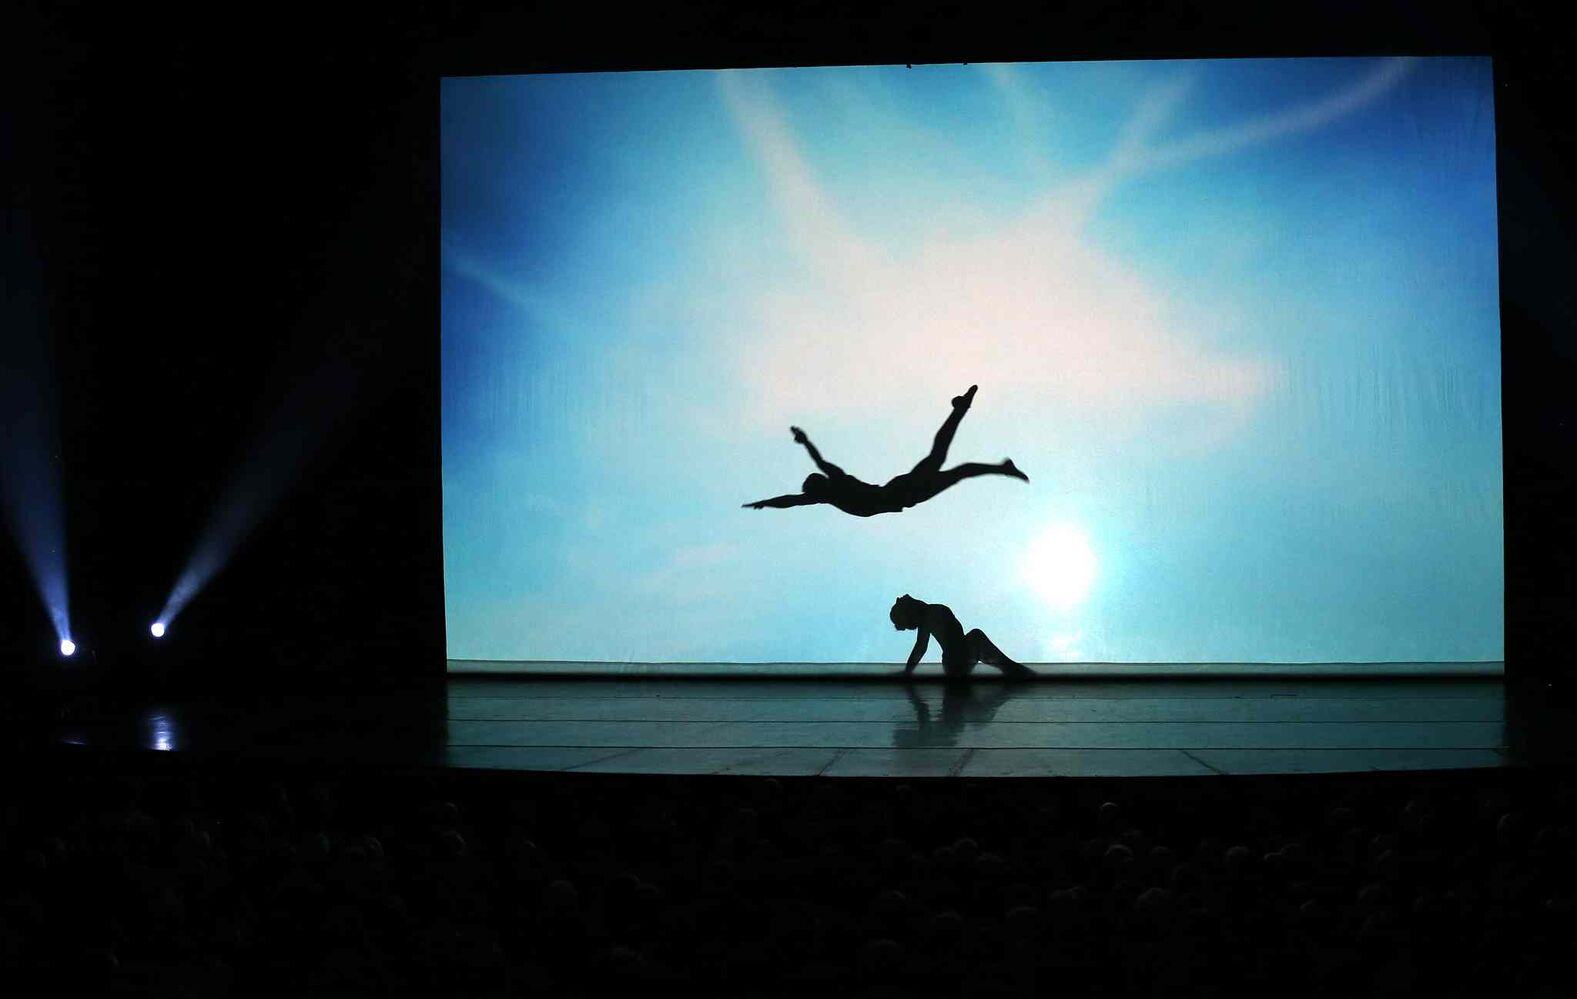 Le Ombré features acrobats and dancers using their silhouettes to create shadow art on both sides of a large screen.